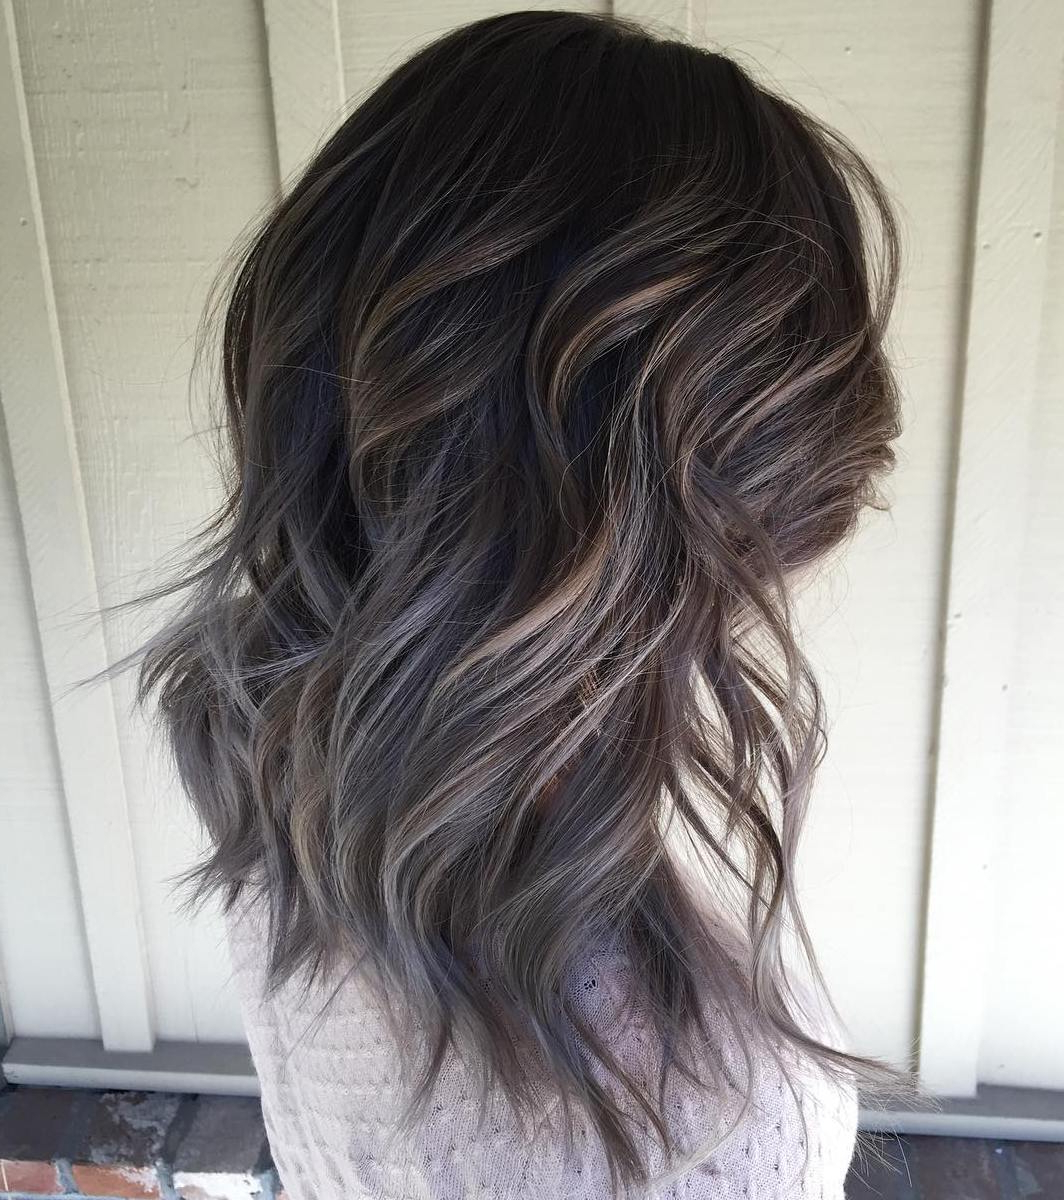 60 Ideas Of Gray And Silver Highlights On Brown Hair Inside Most Recently Released Black Twists Hairstyles With Red And Yellow Peekaboos (Gallery 20 of 20)